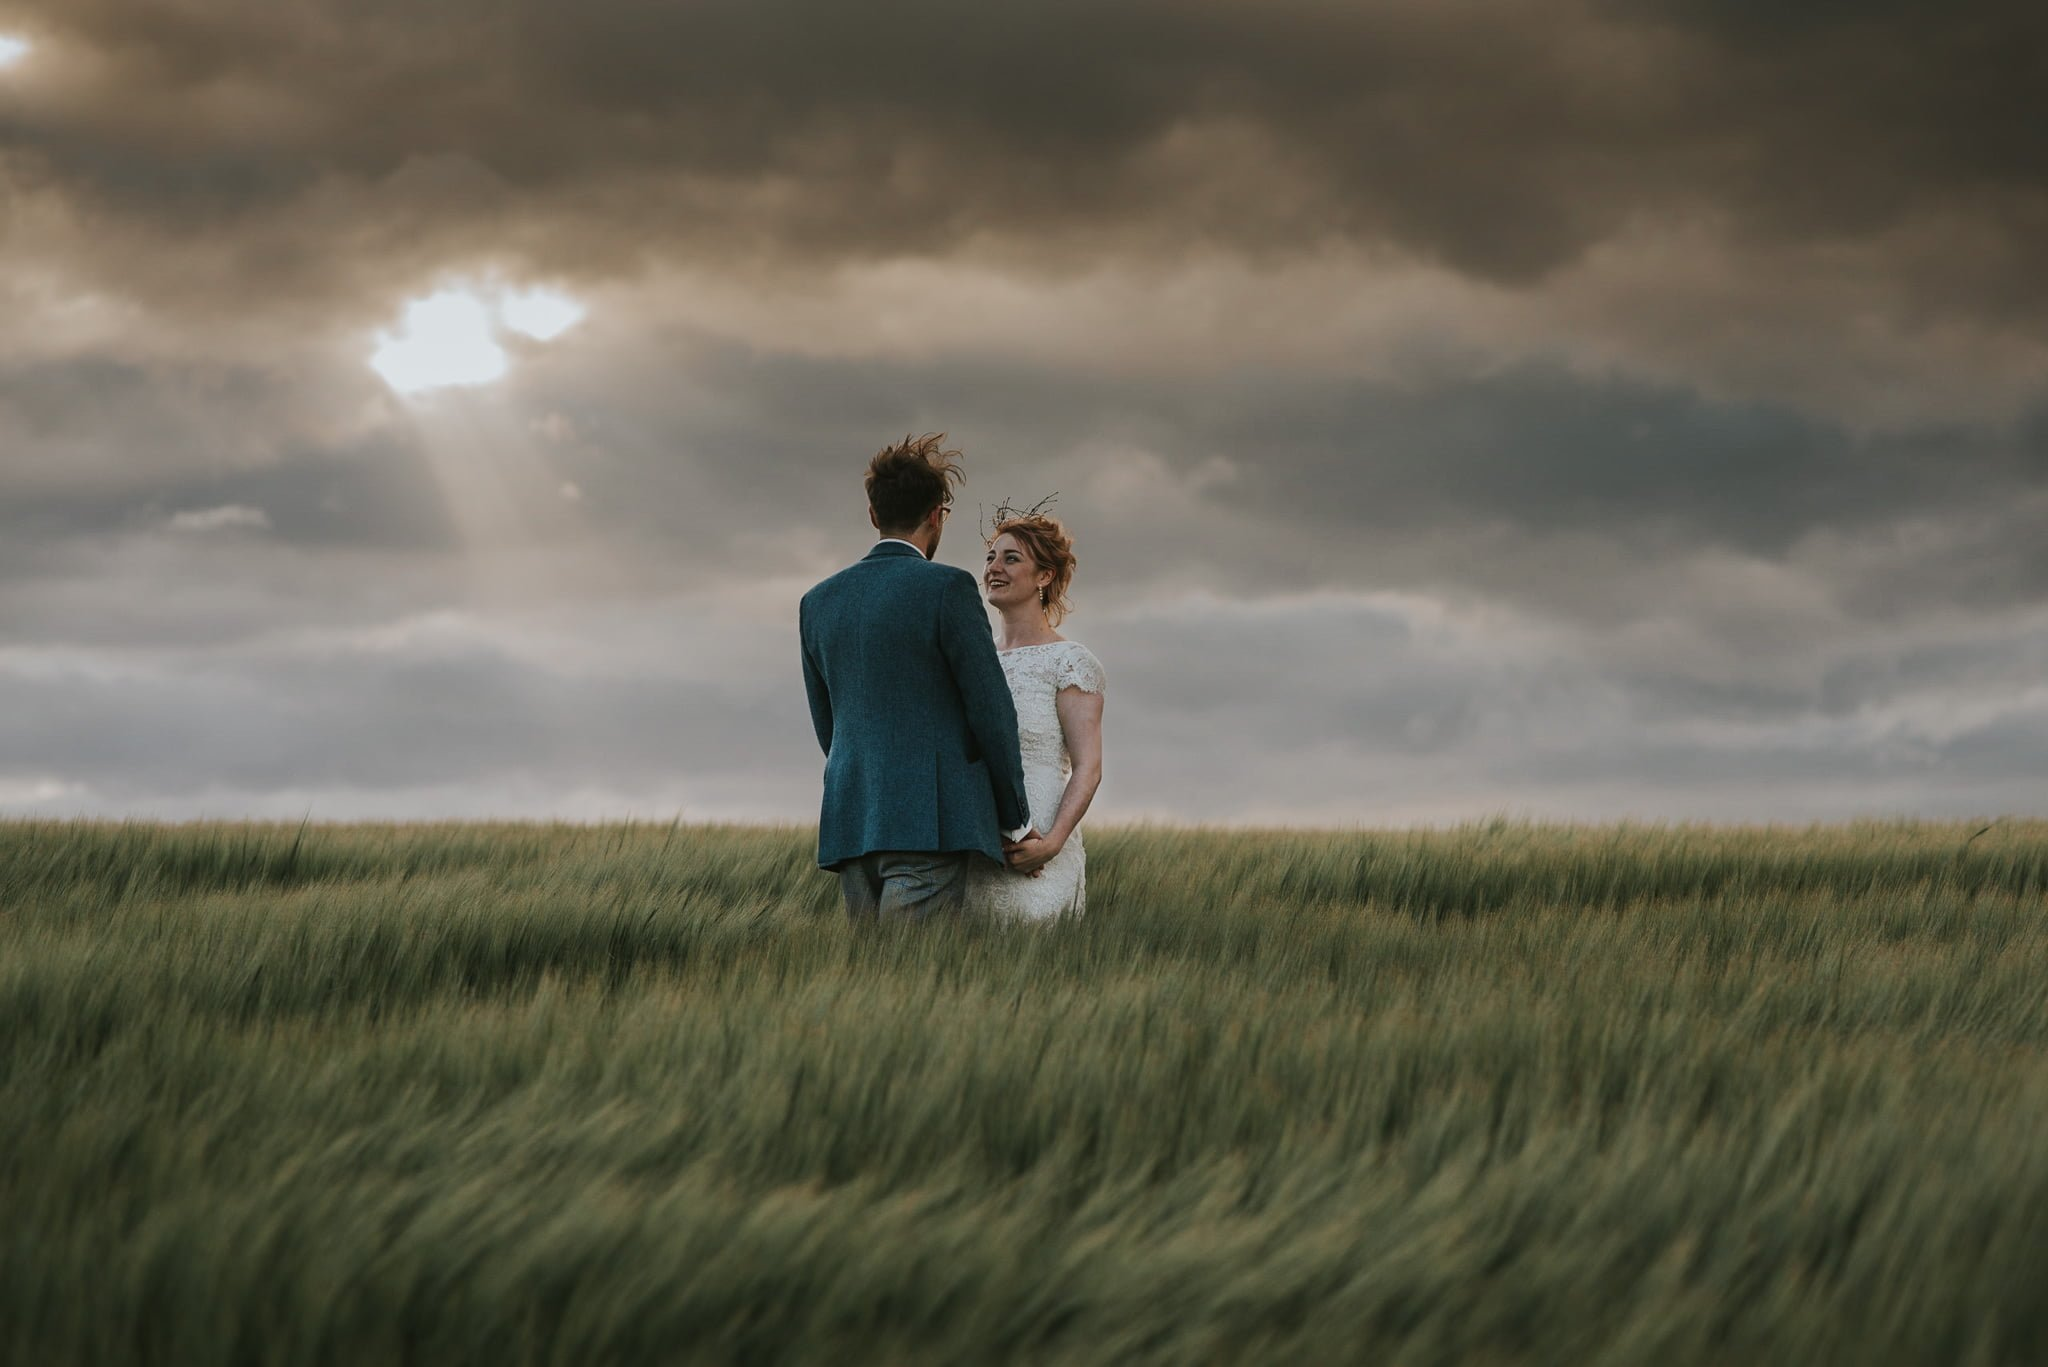 couple in barley field sun breaking through clouds